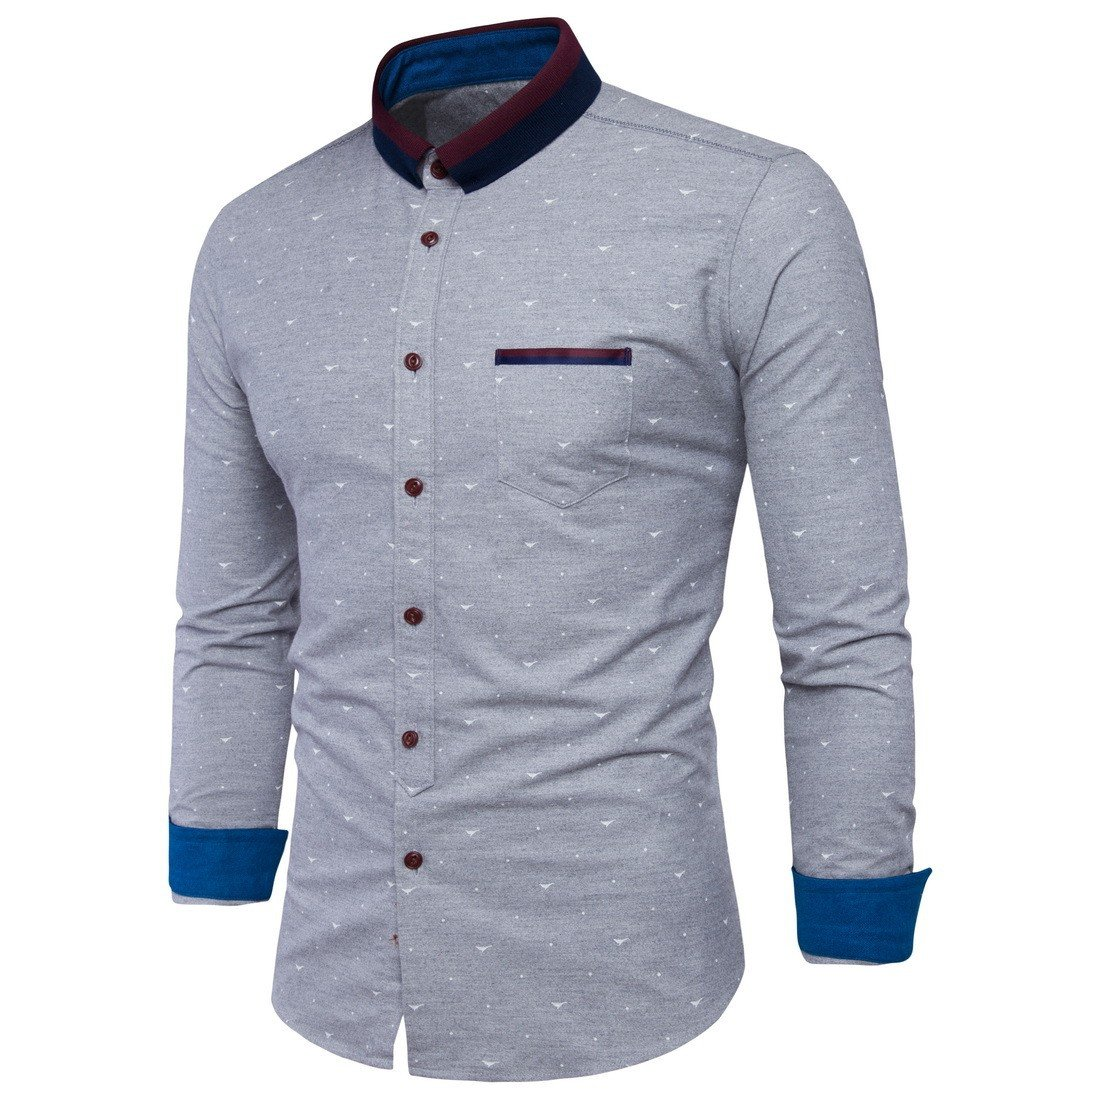 Tootless Men Contrast Color Bussiness Fashion Turn Down Collar Dress